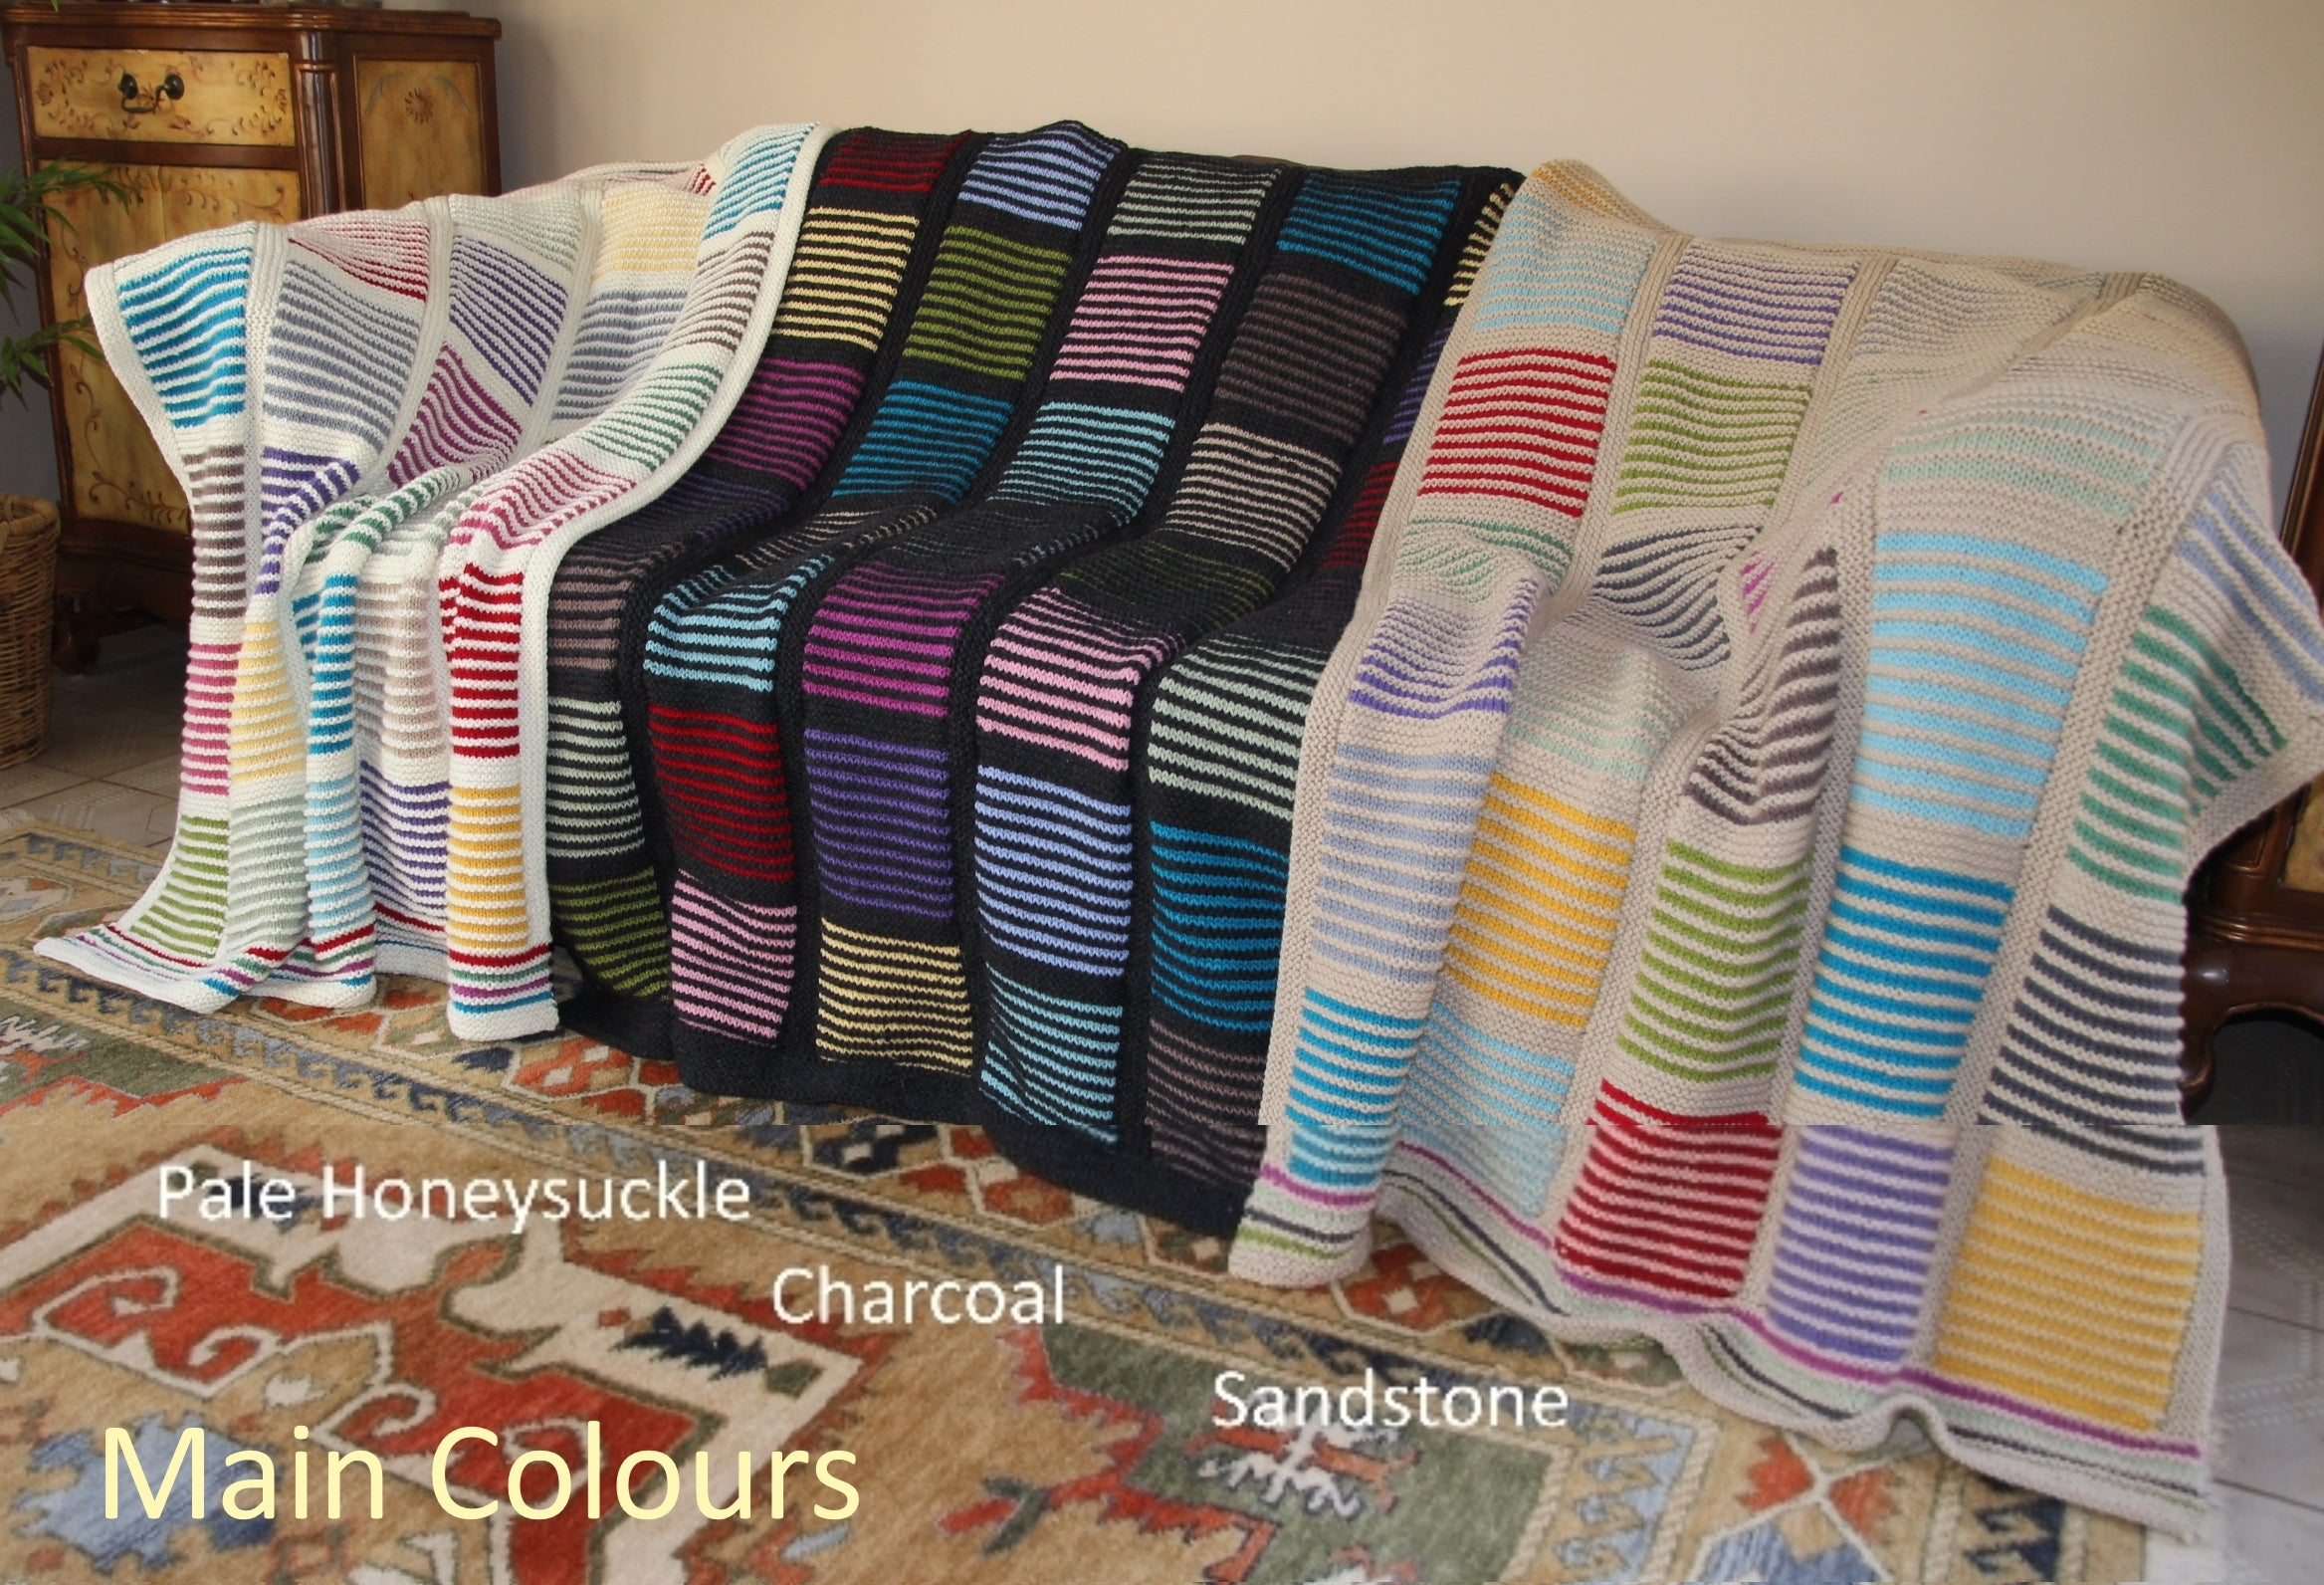 Easy knit woolen blanket in three colorways draped over chairs.